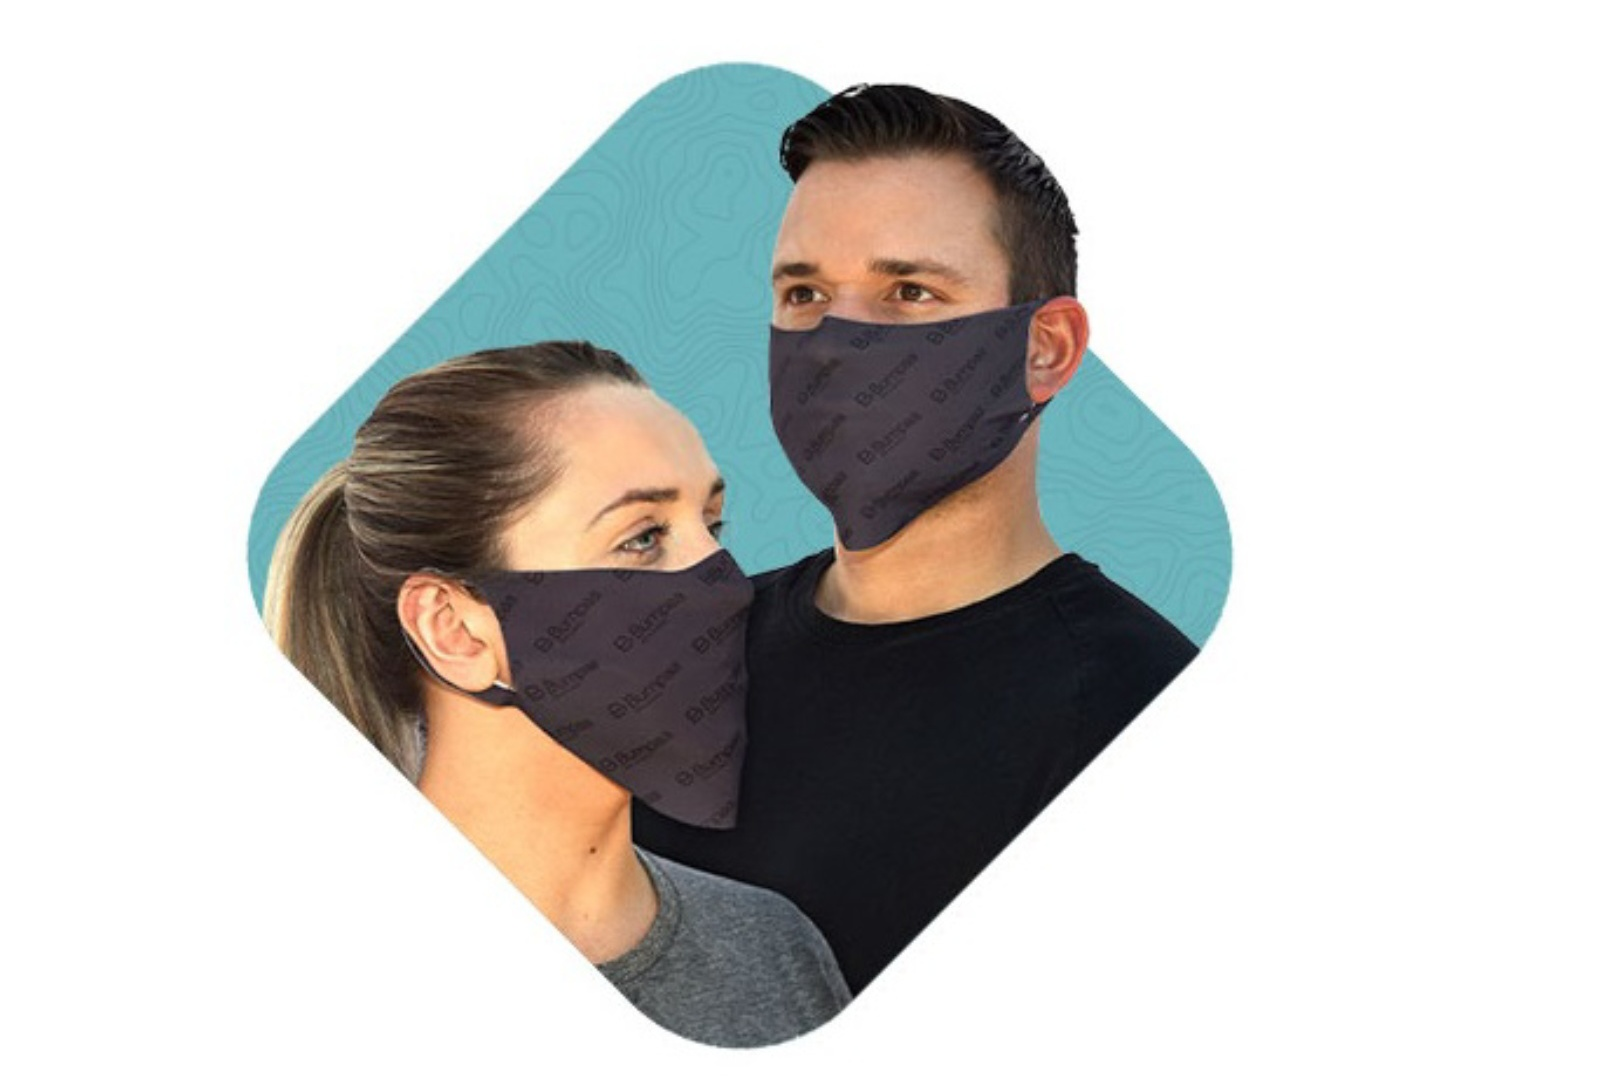 Face Masks - Anti-Viral, Re-Usable, & Disposable